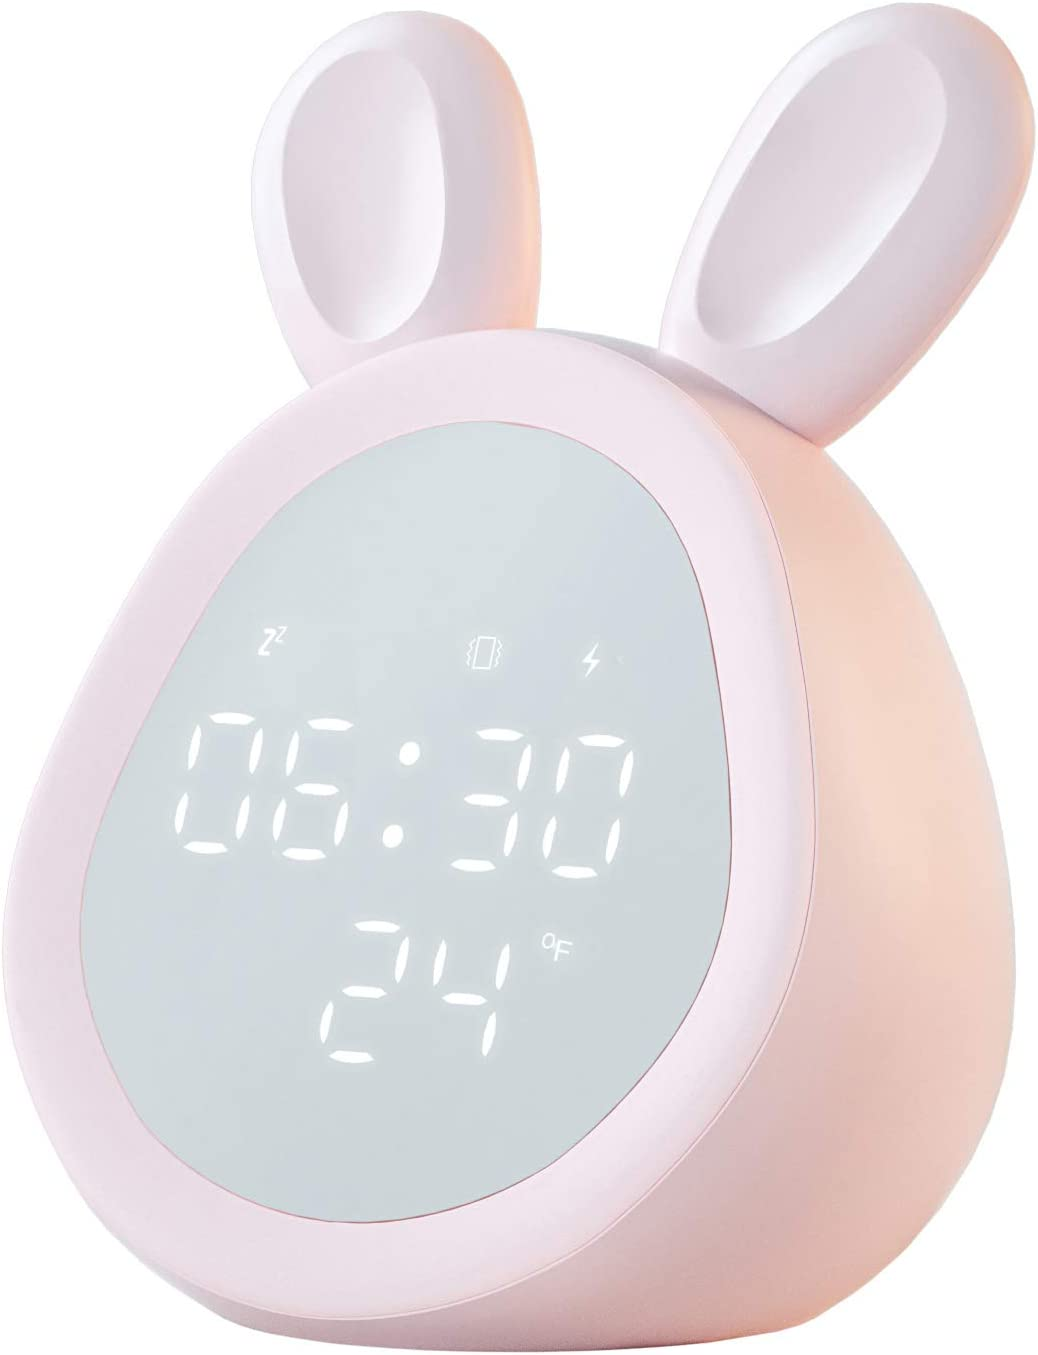 Cozy Villa Alarm Clocks for Bedrooms with Snooze and Night Lights, Digital Alarm Clock with Thermometer, Volume and Brightness Adjustable, Rechargeable, Pink, Bunny Shaped